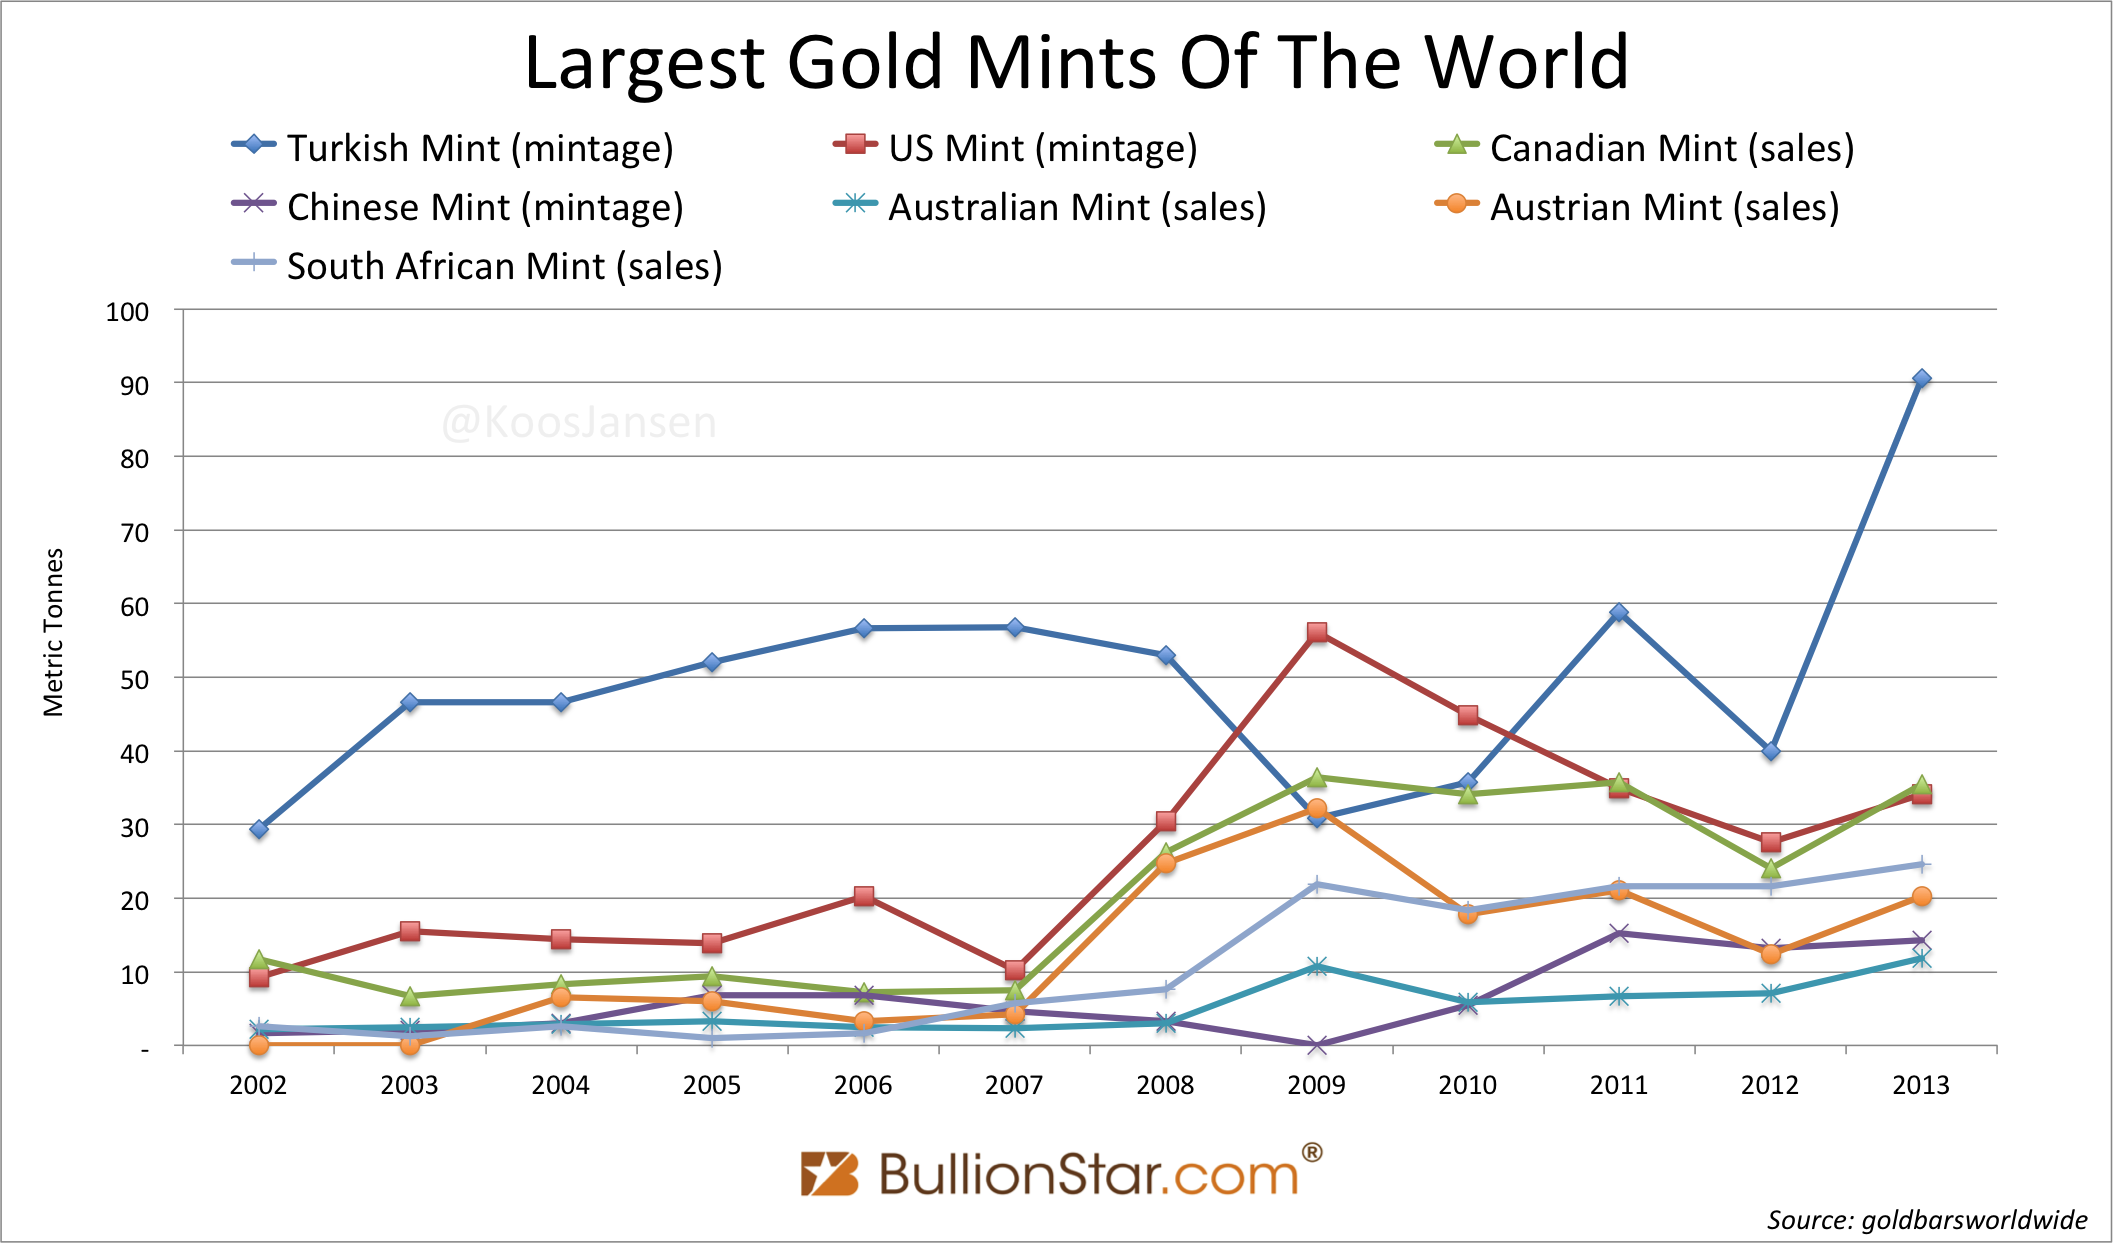 The Largest Gold Mints Of The World